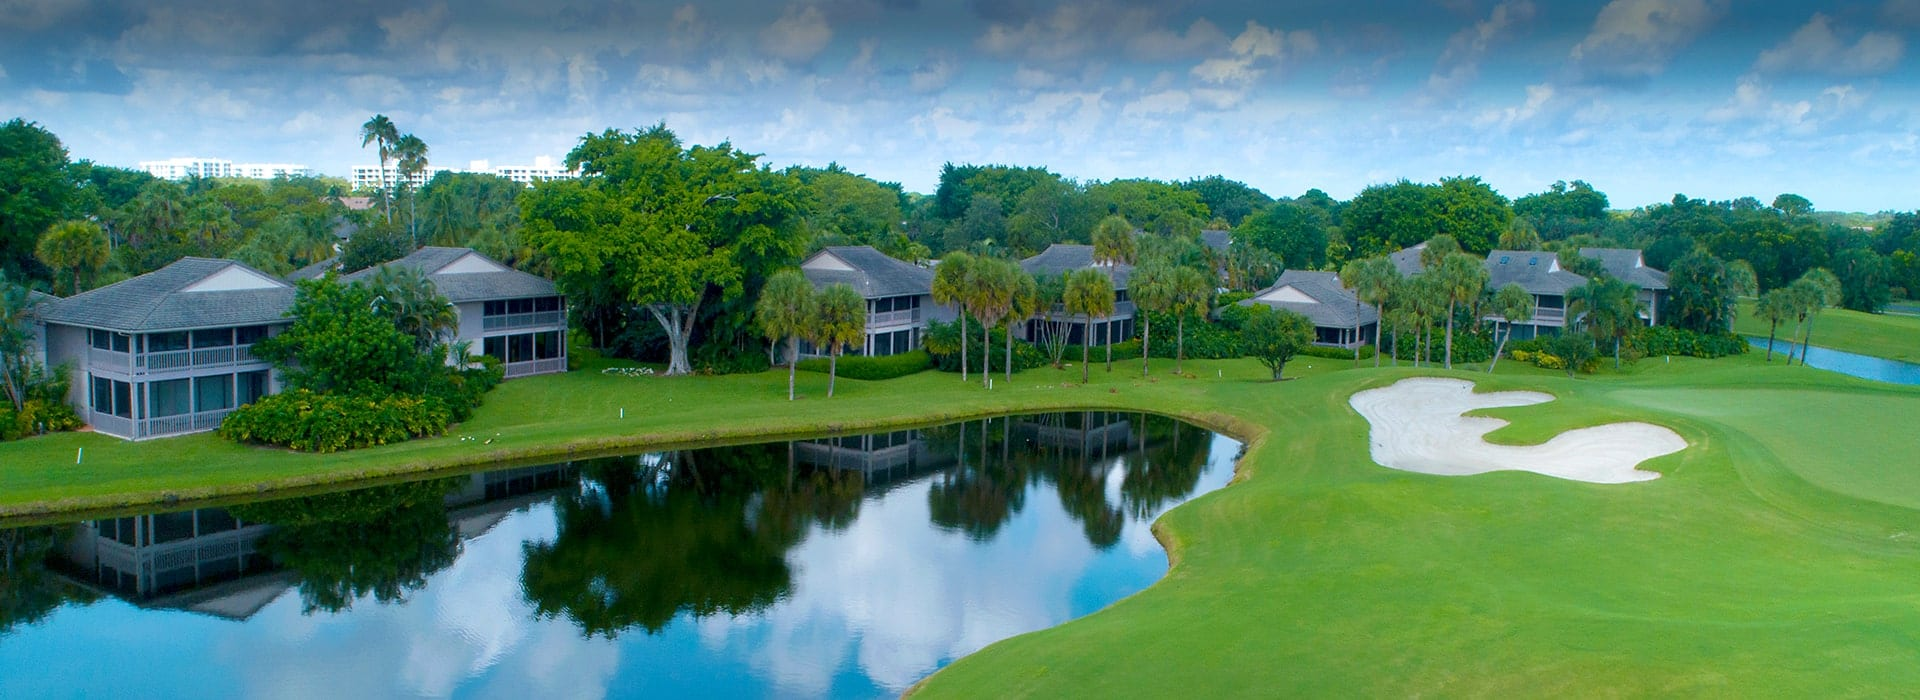 Plantation Colony attached villas nestled in among large trees and alongside the golf course